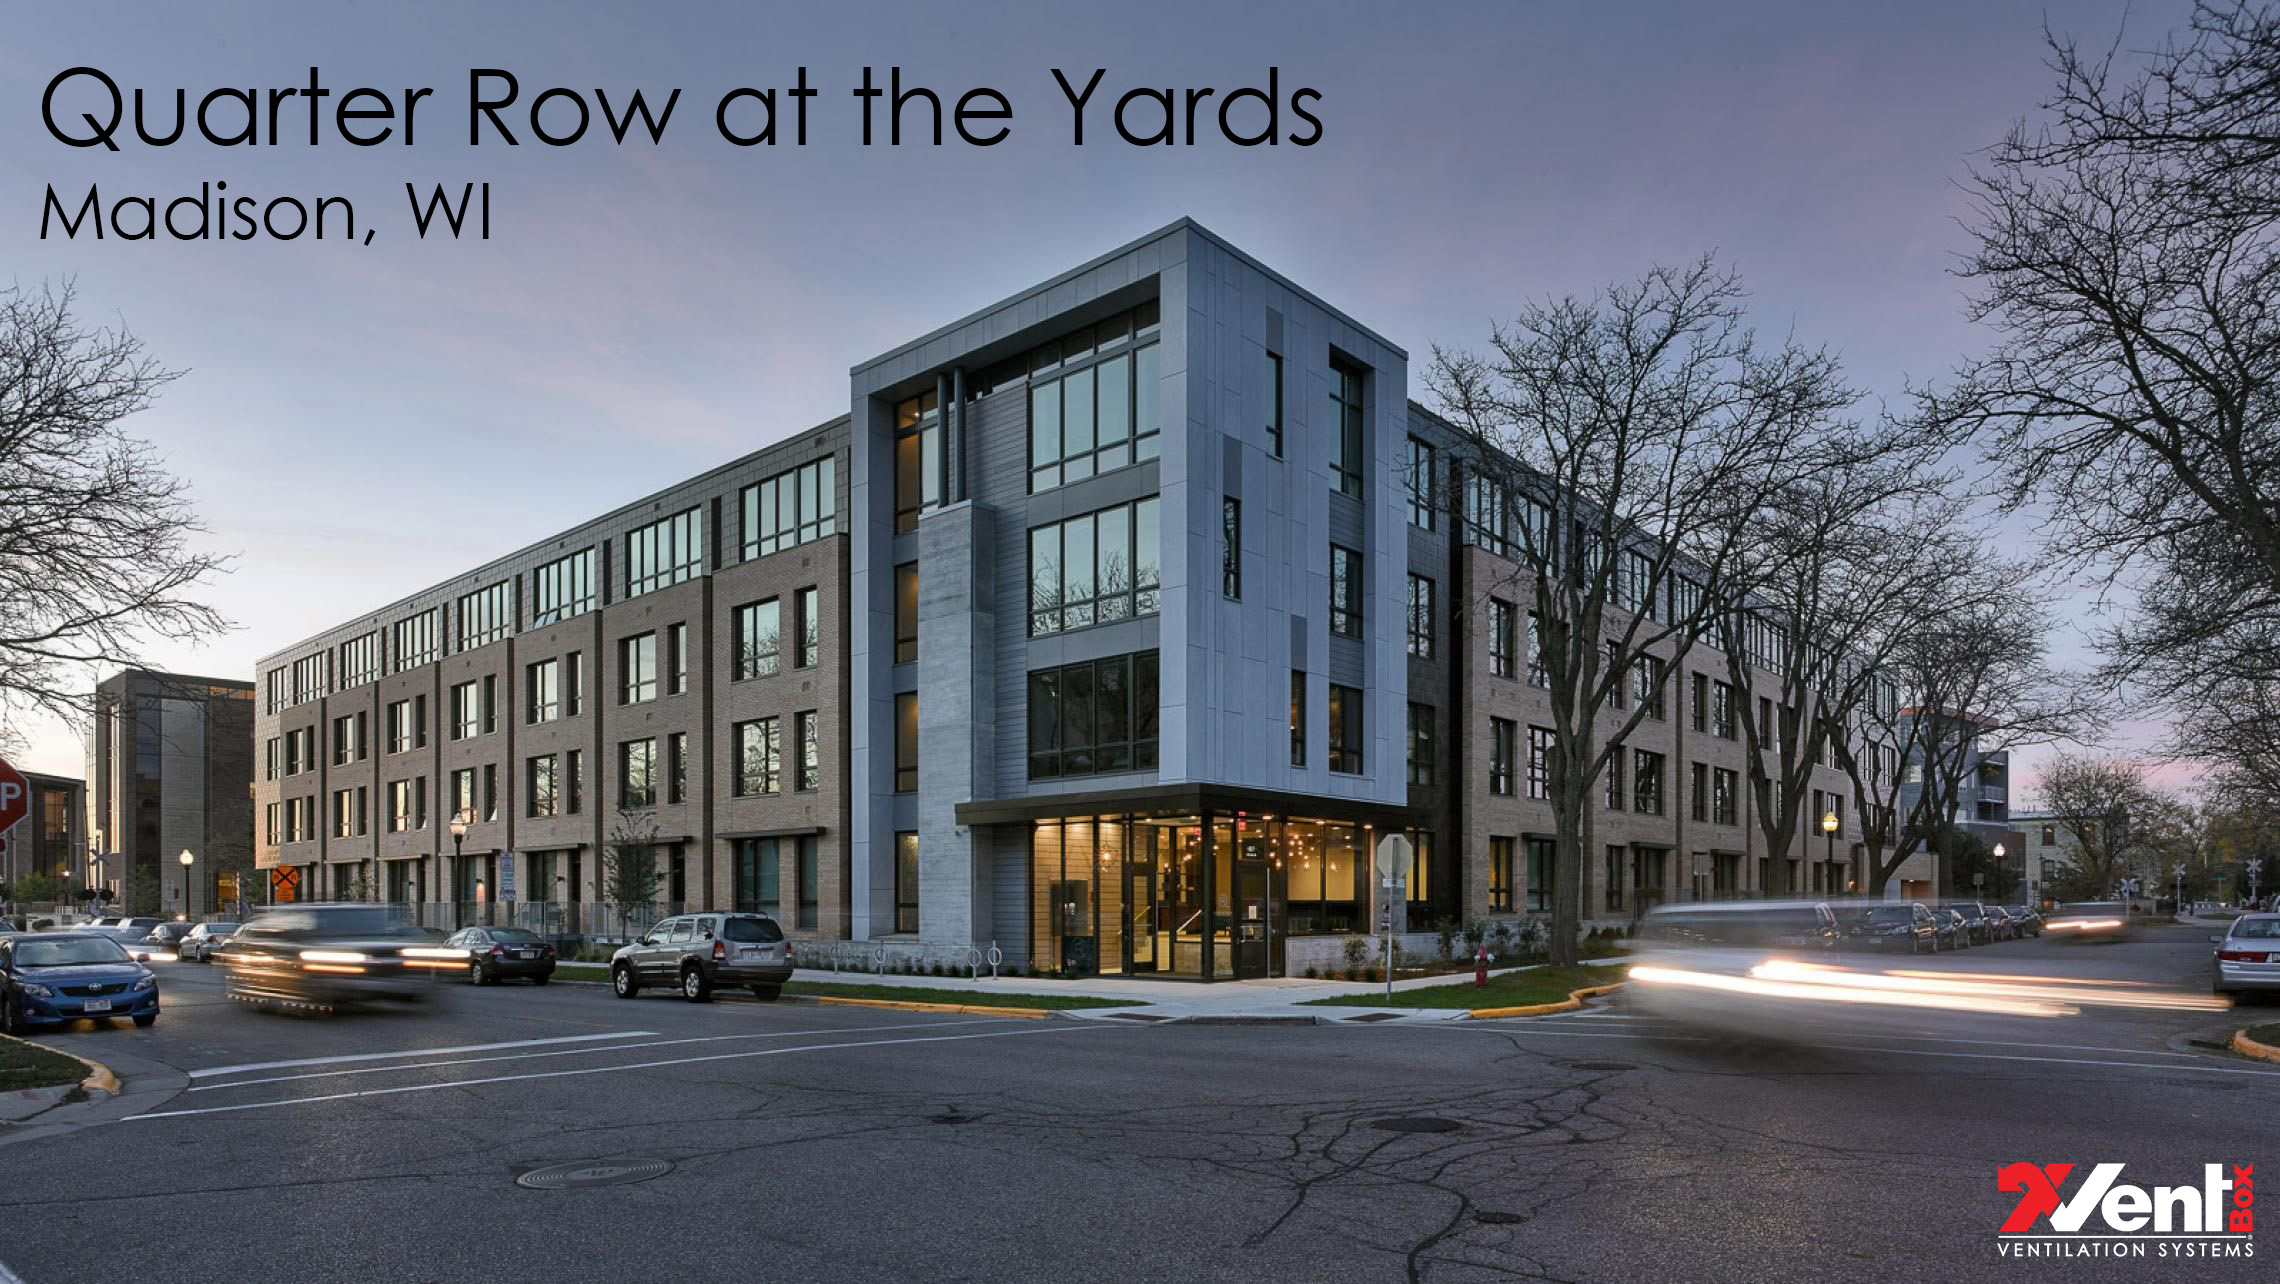 Quarter Row at the Yards